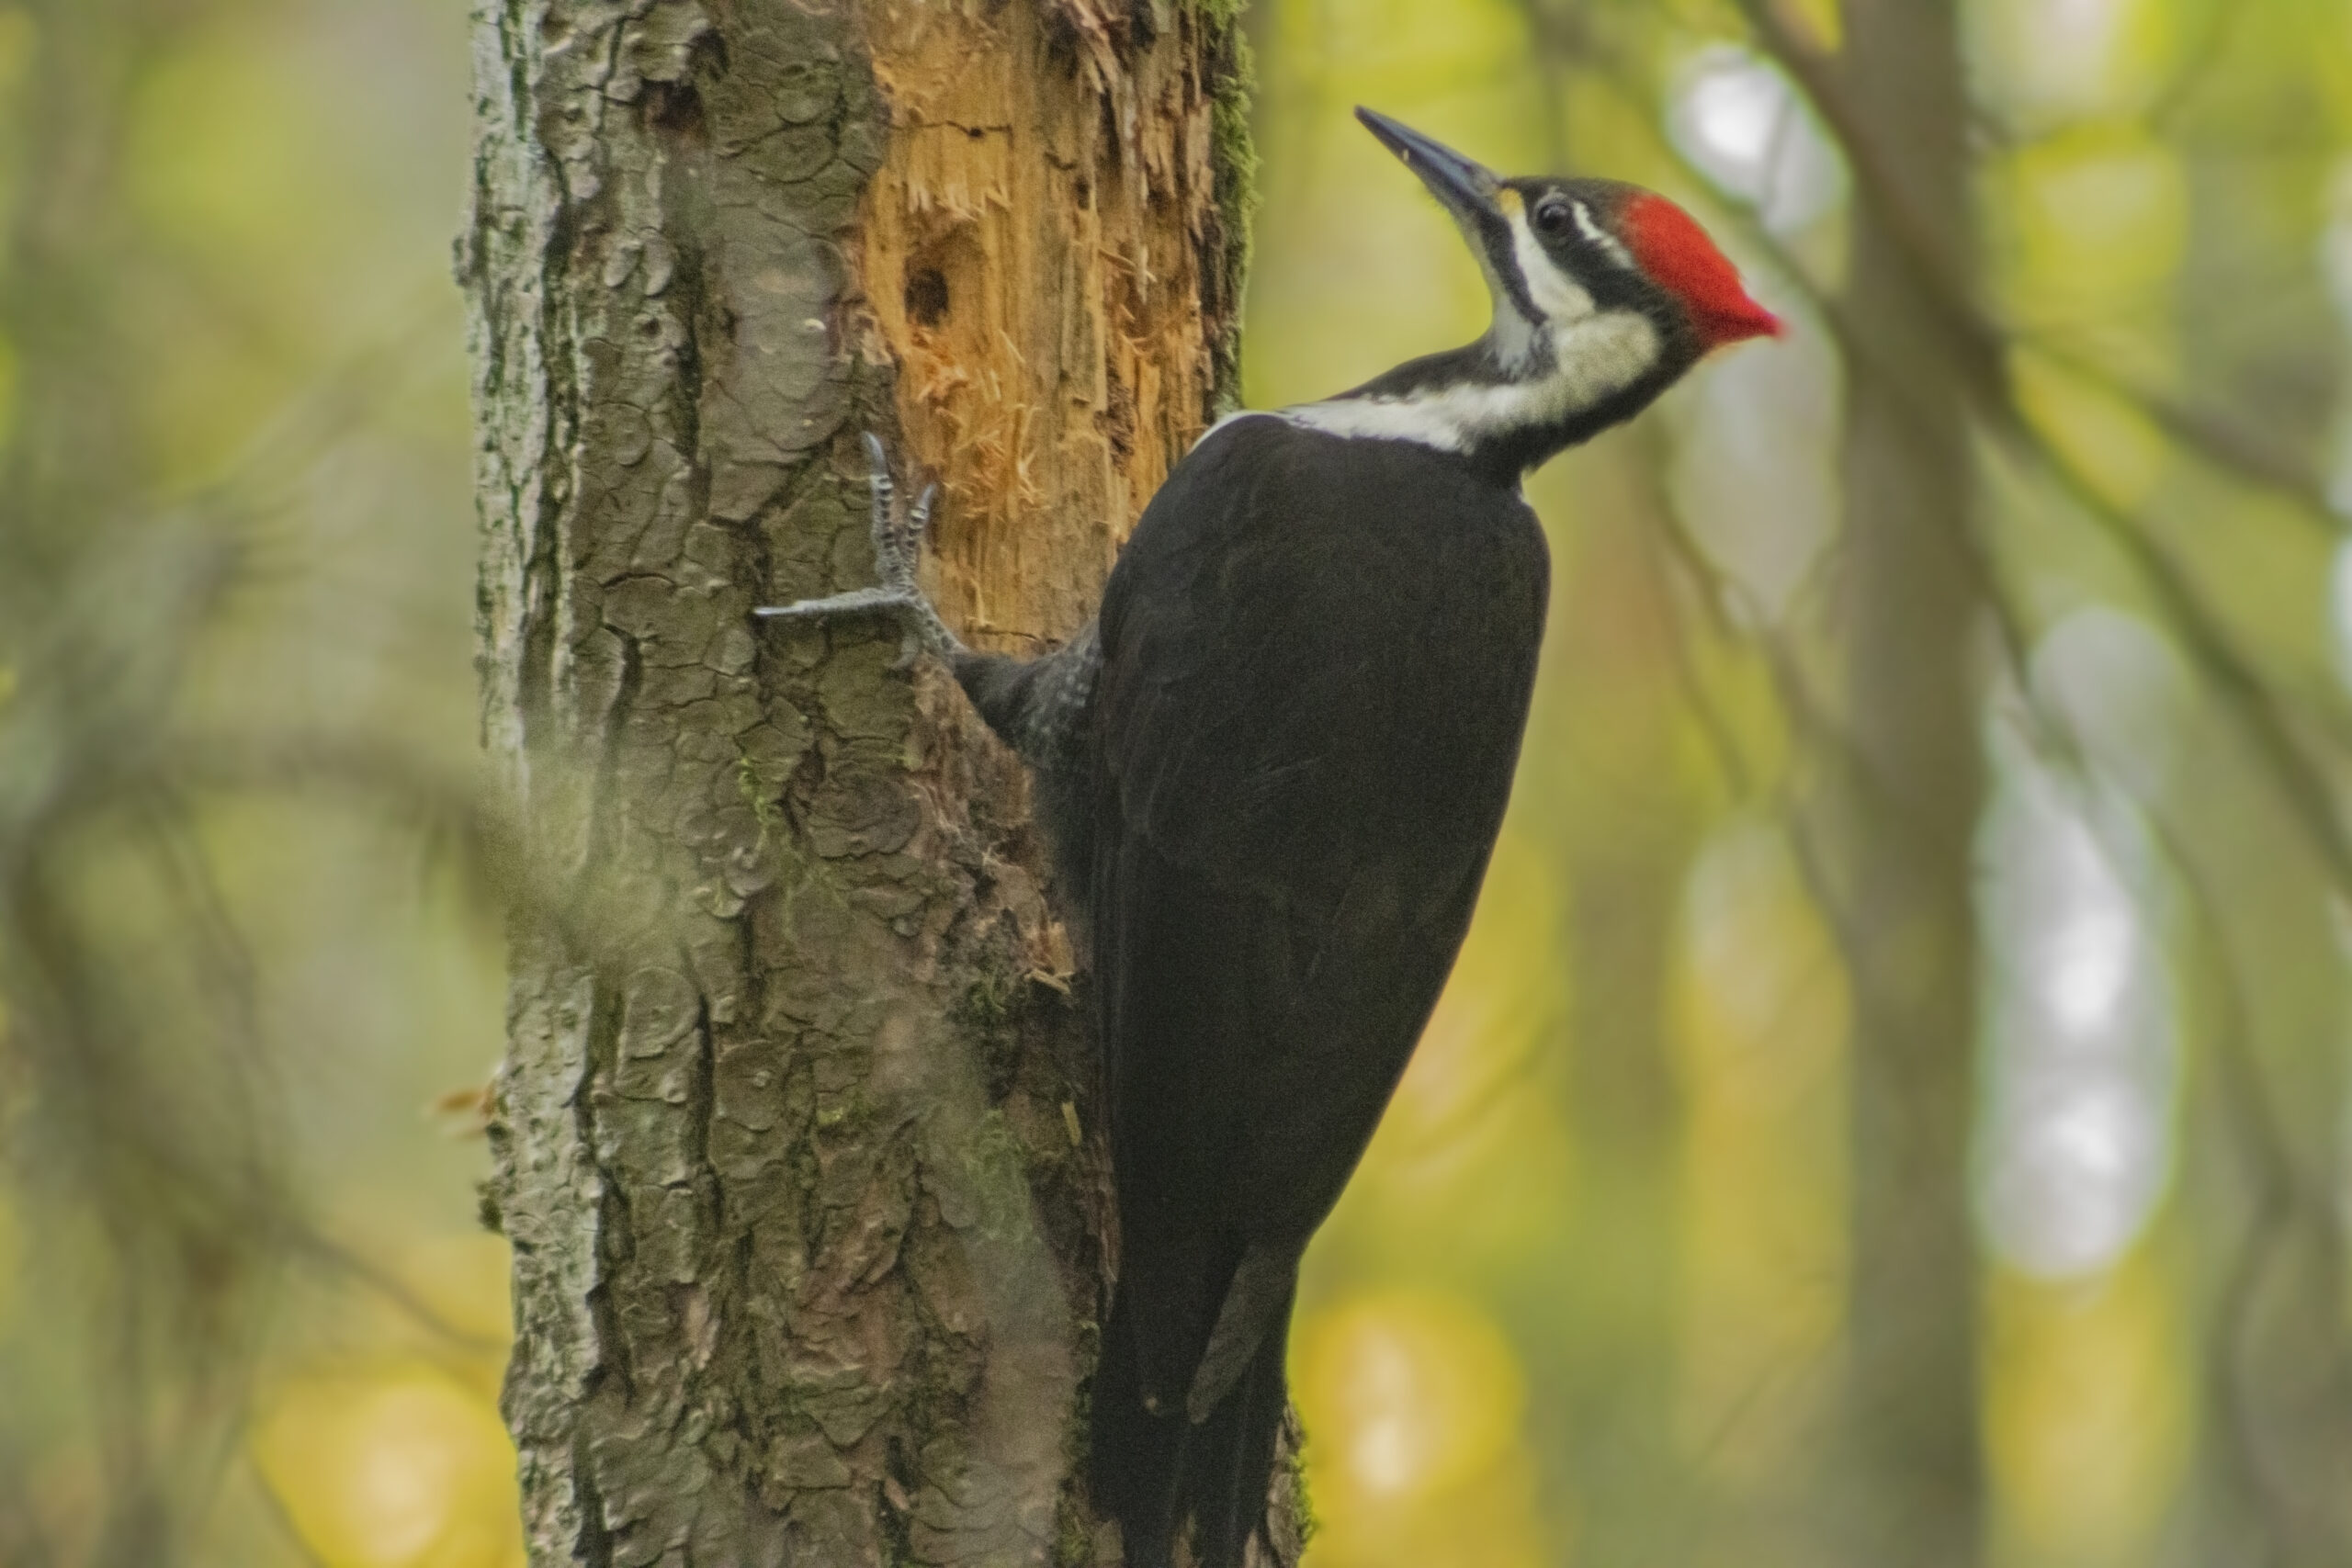 Female Pileated Woodpecker, April 19, 2021